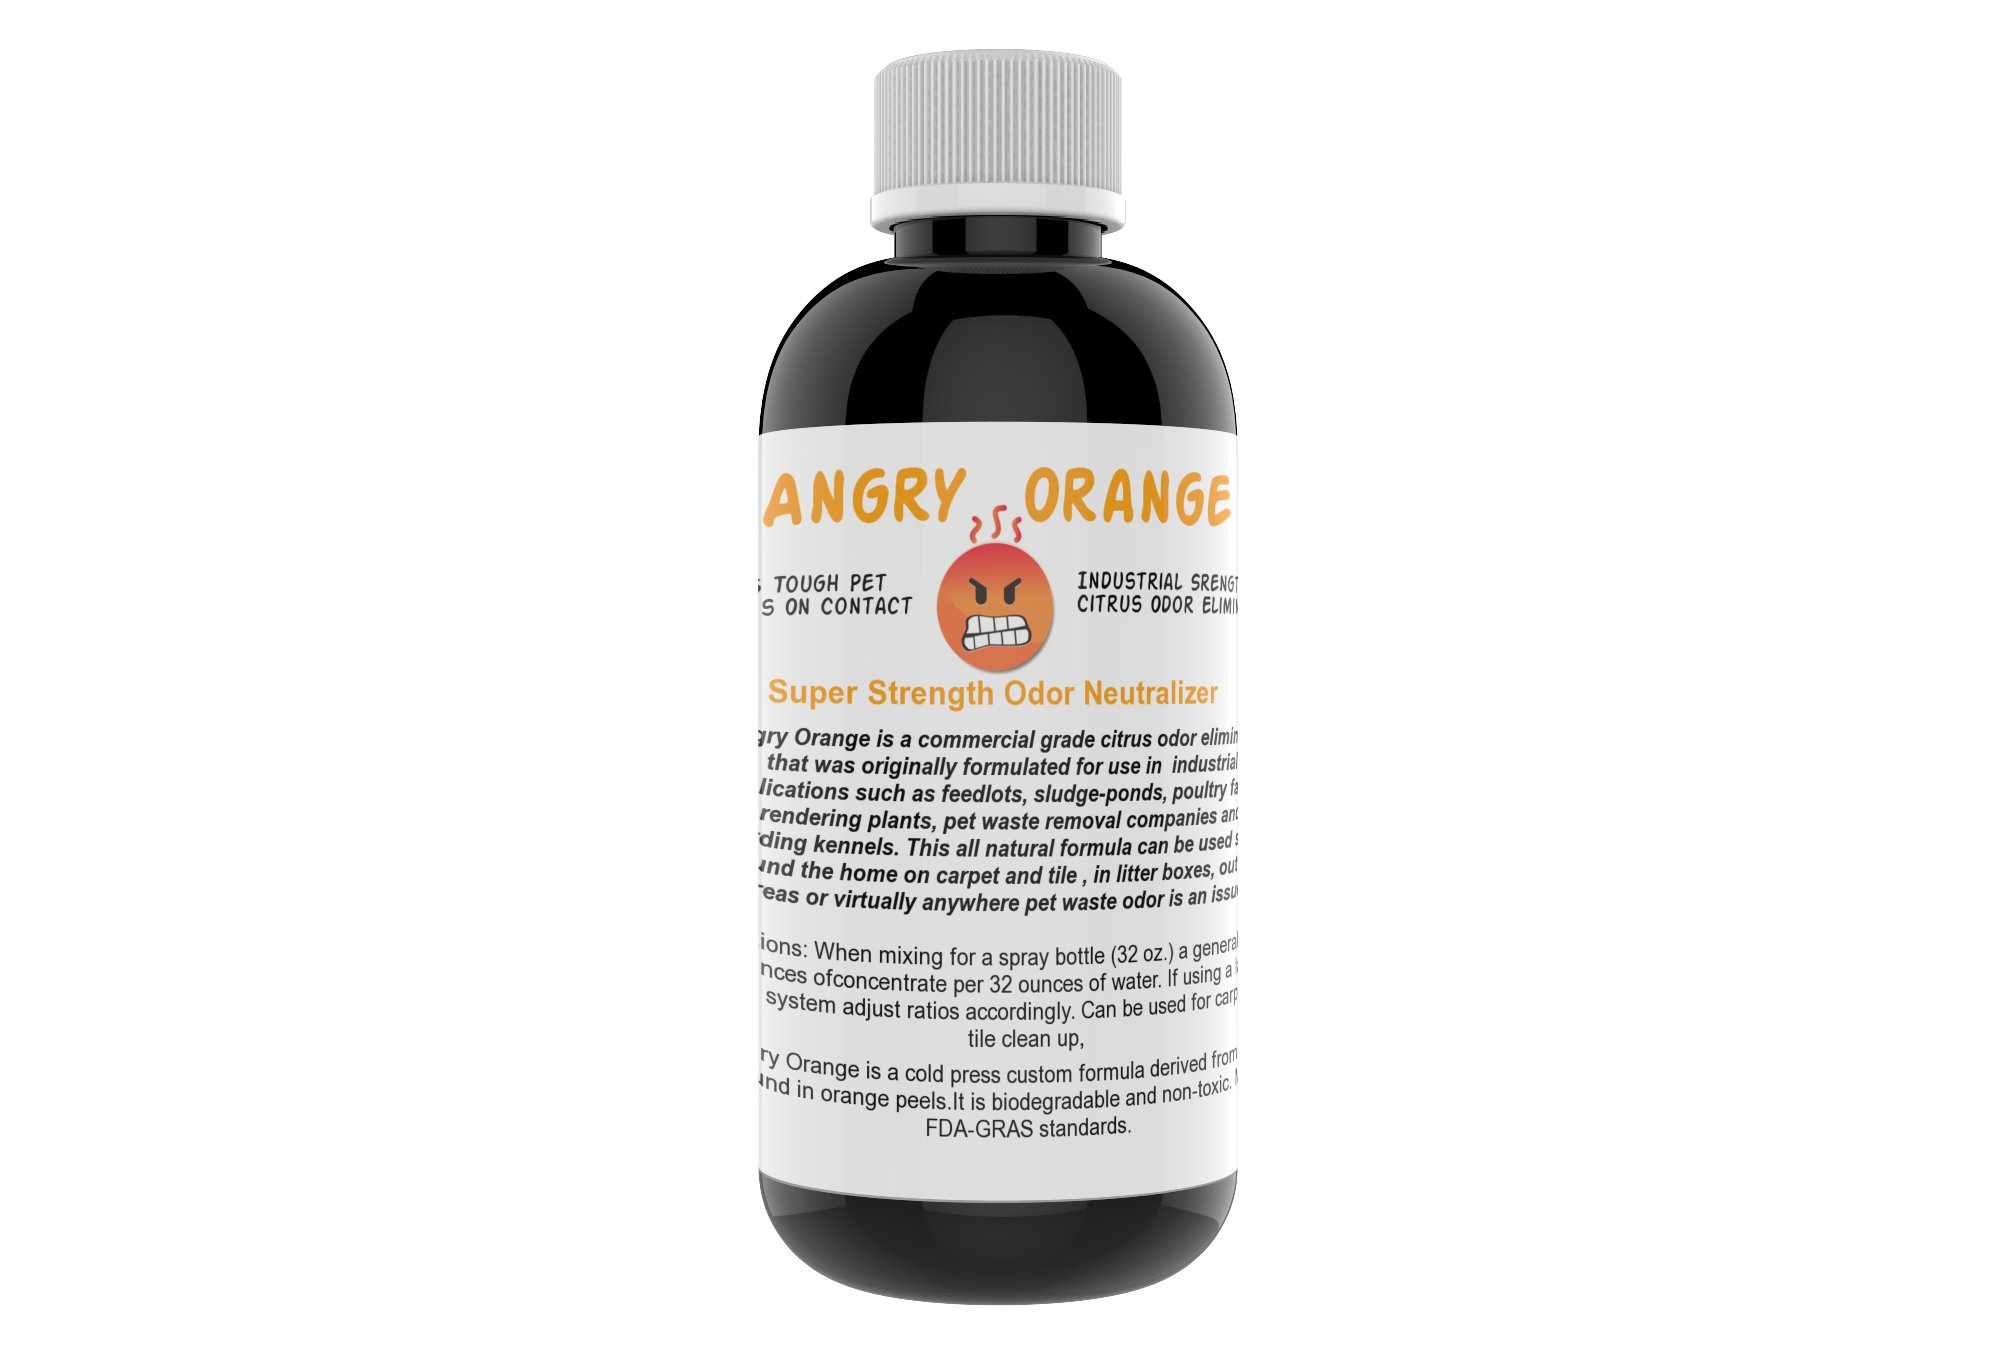 Angry Orange Pet Odor Eliminator 8 oz. bottle- Industrial Strength Pet Odor Remover - Makes (4) 32oz. Bottles - 1 Gallon - Neutralizes and Sanitizes Tough Pet Odors Fast by Angry Orange (Image #3)